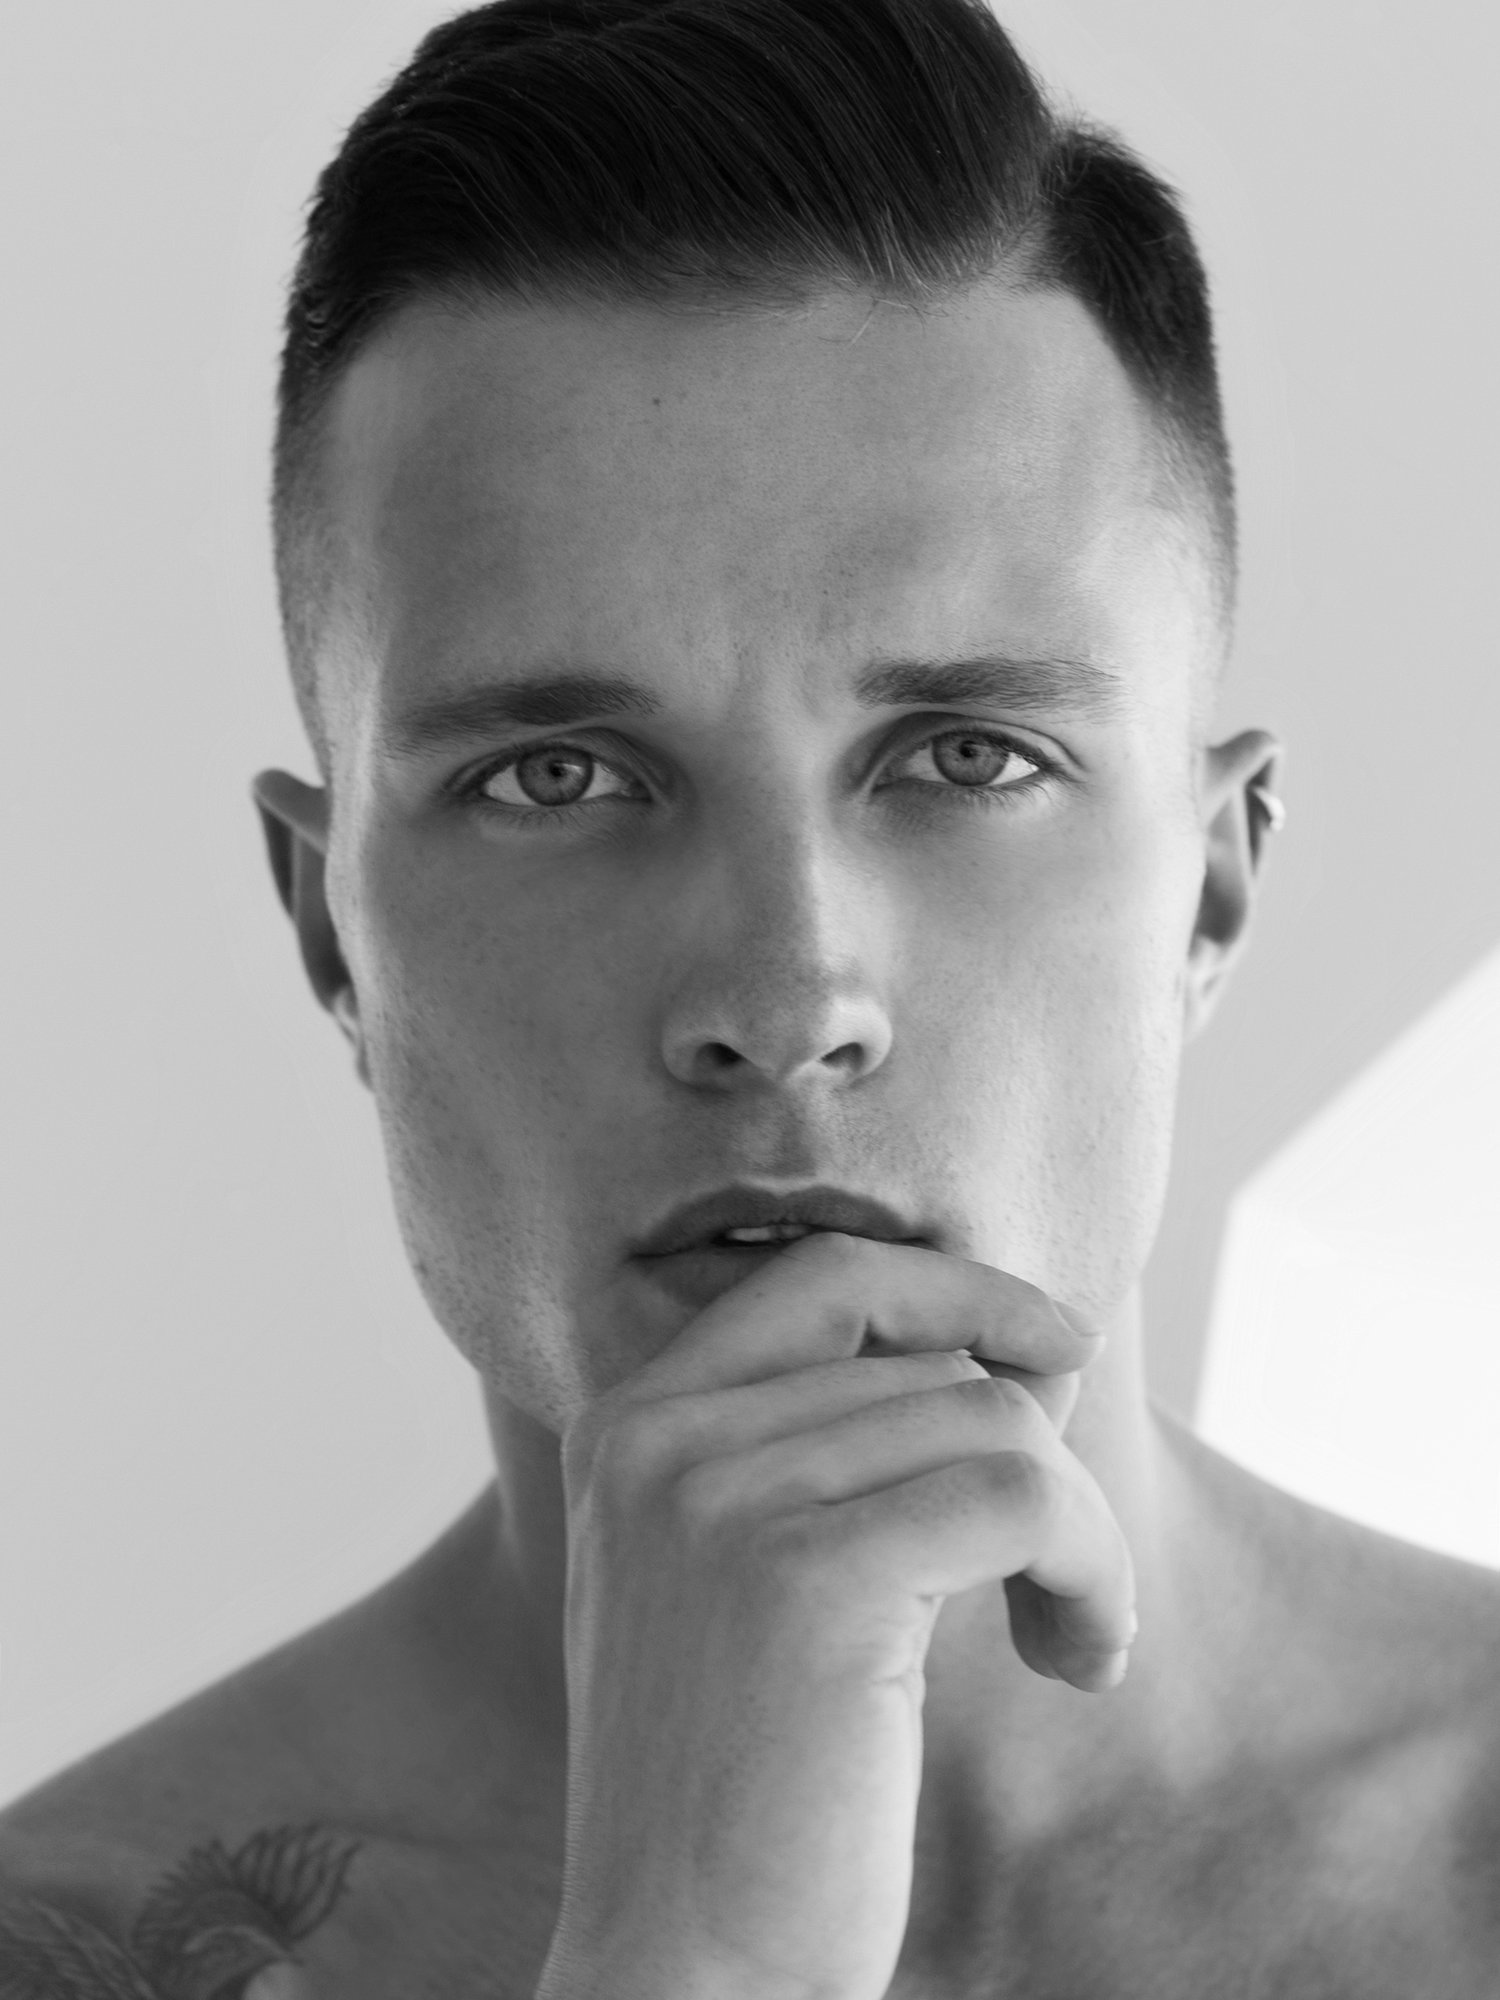 Adon Exclusive: Model Antoni Bialy  By Lira Toin